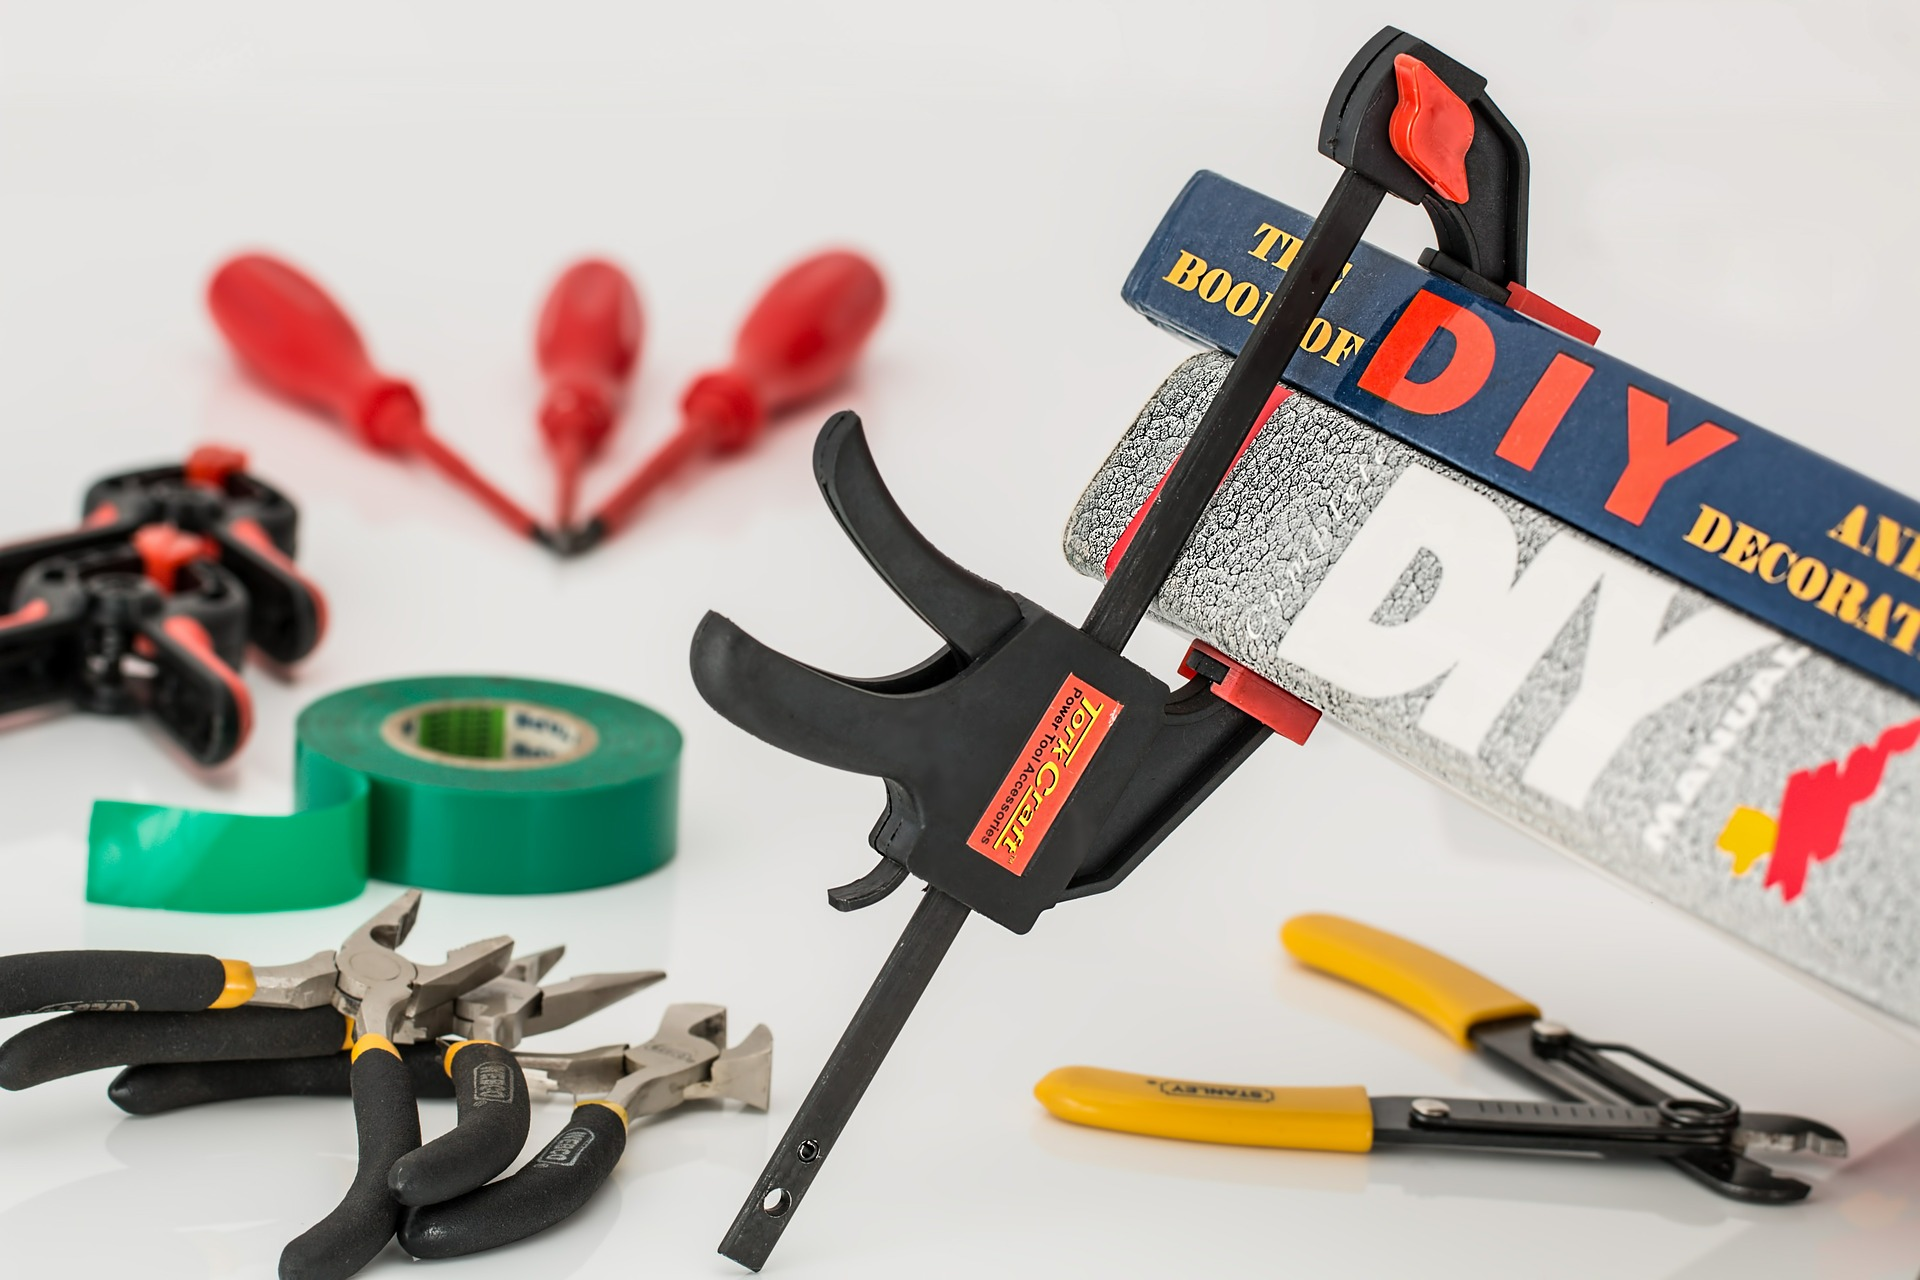 Before starting a DIY project, gather your tools and prepare your space